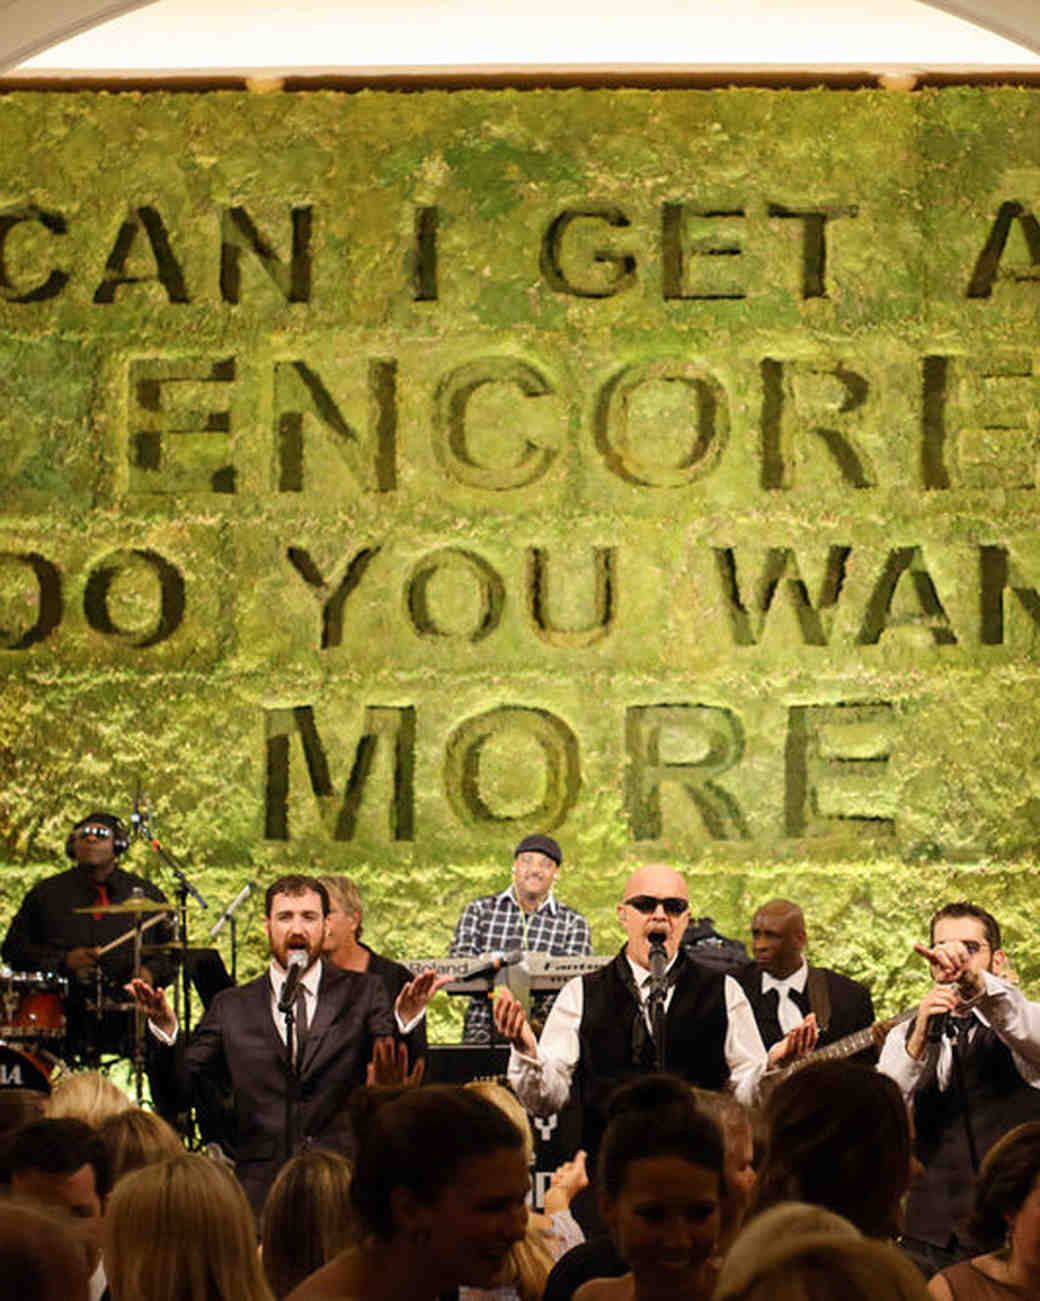 modern wedding typographic band backdrop